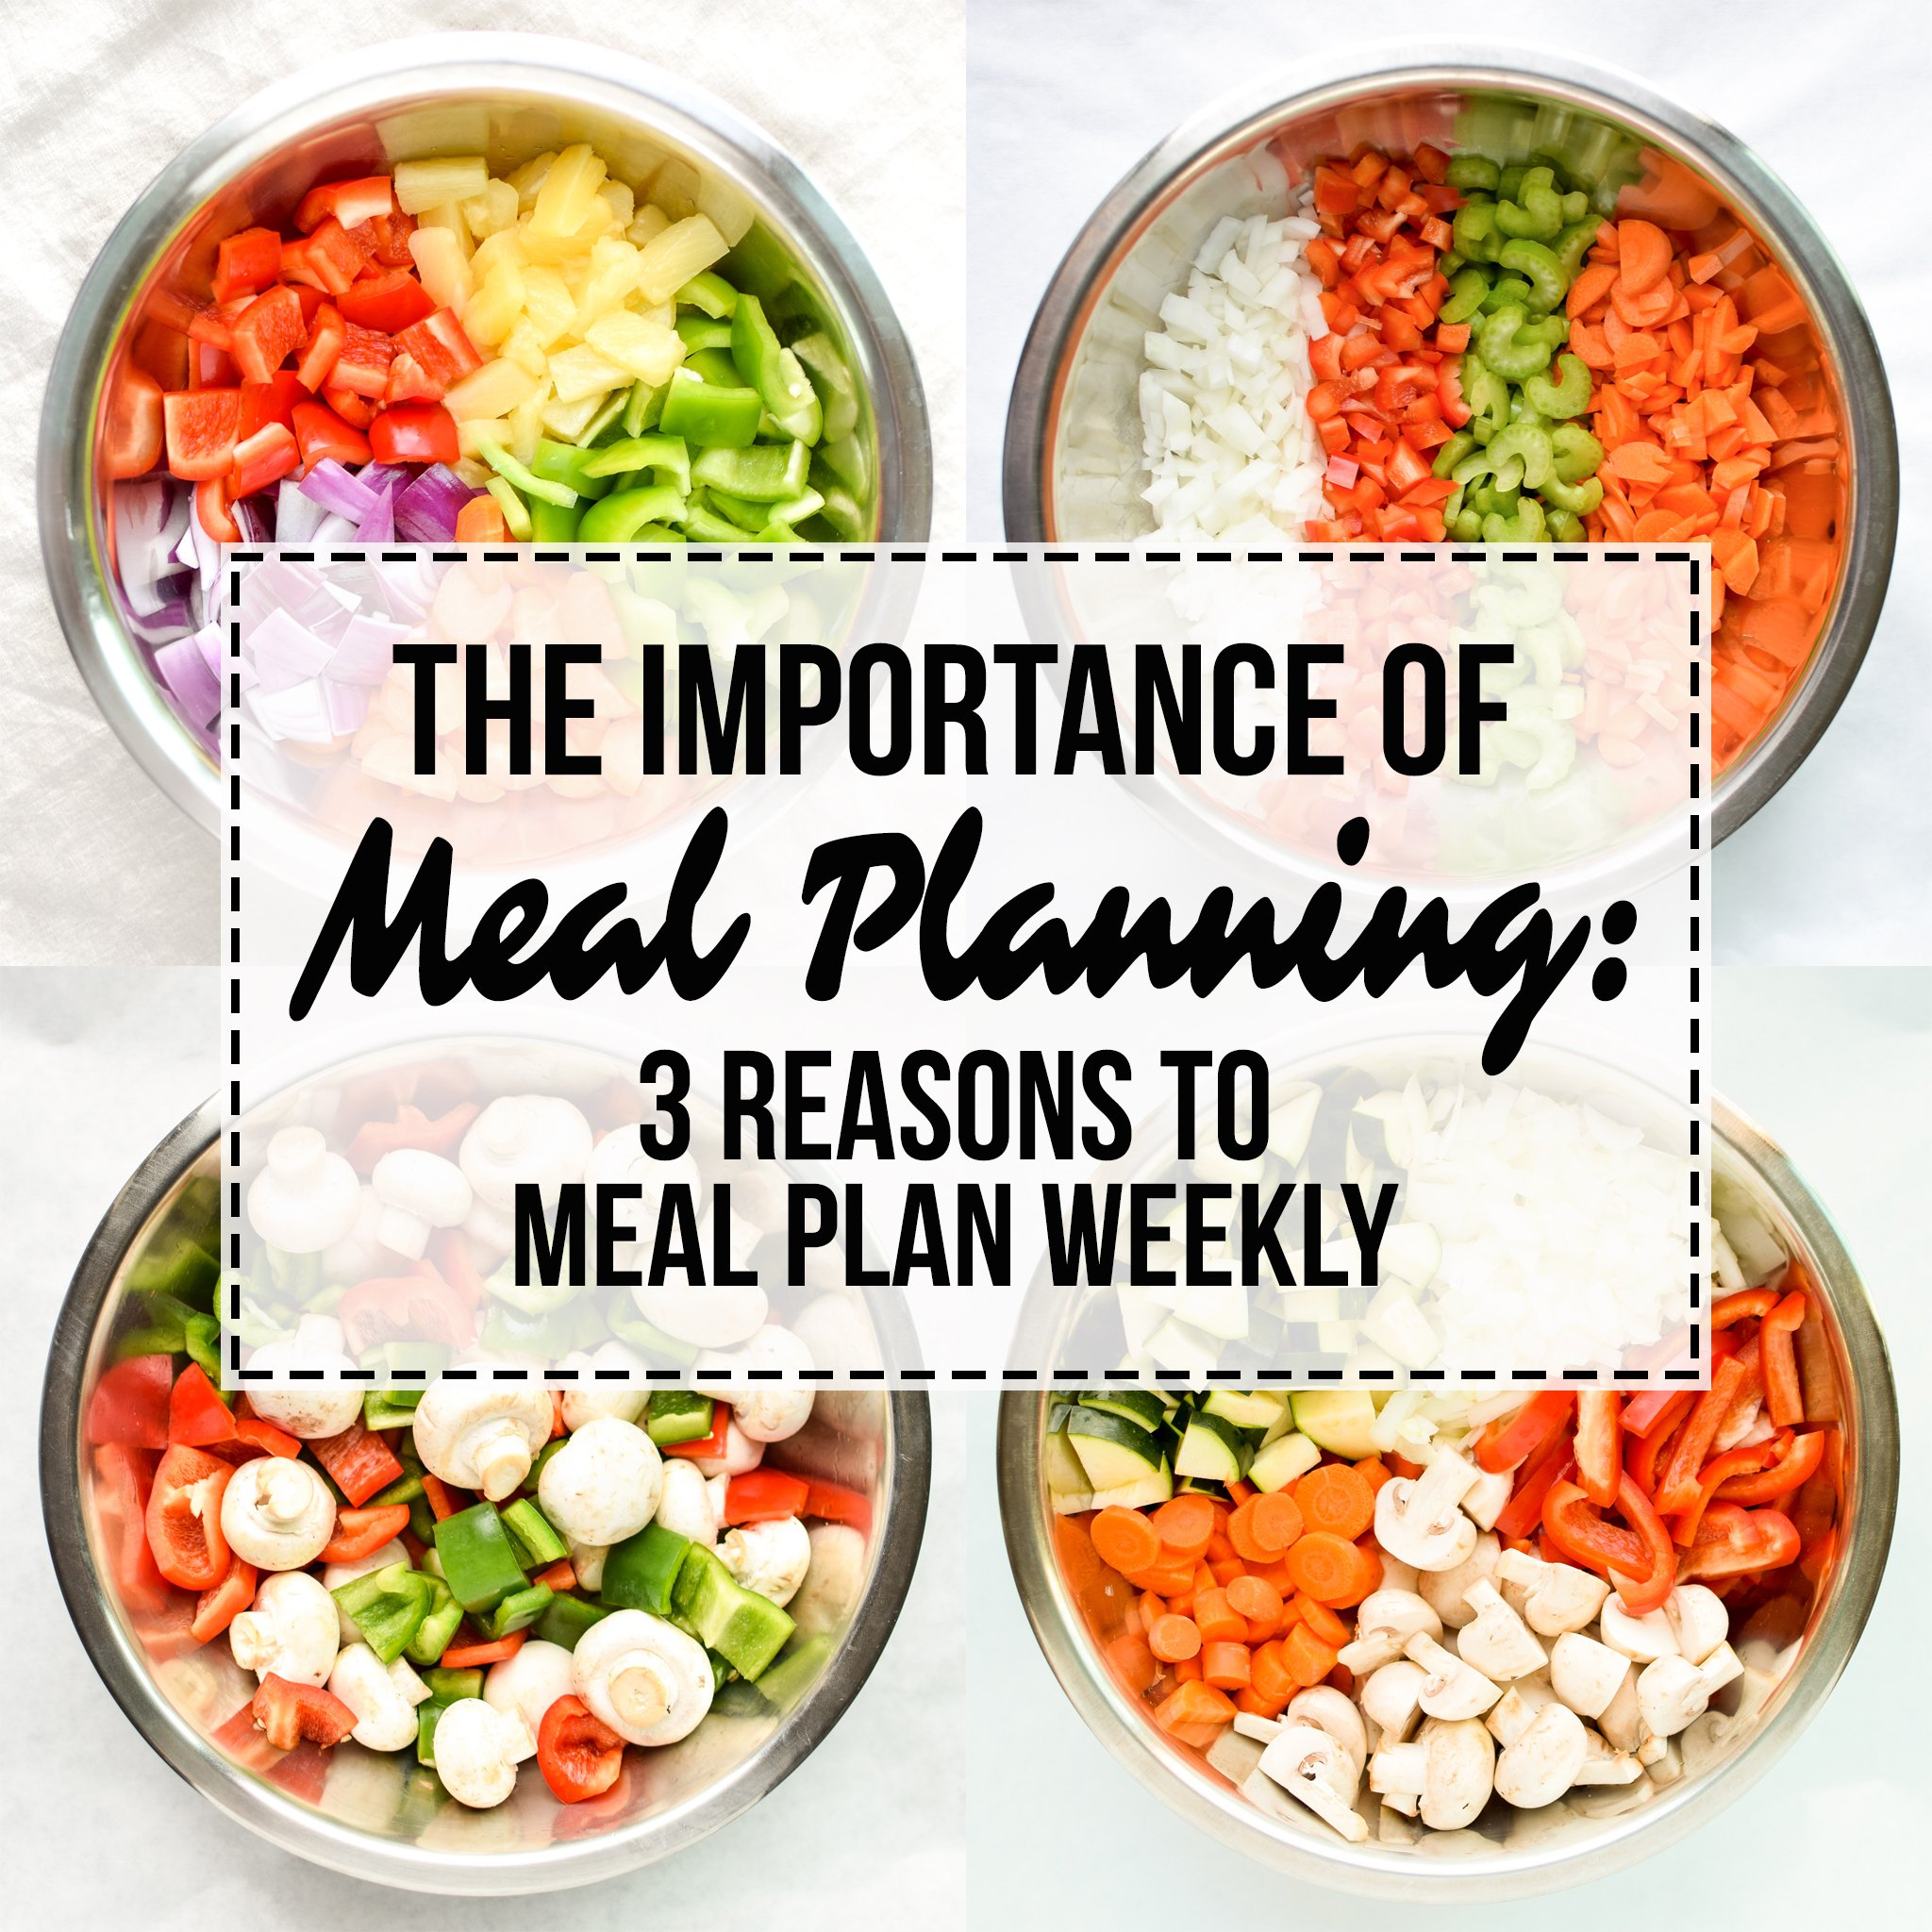 The Importance Of Meal Planning 3 Reasons To Meal Plan Weekly